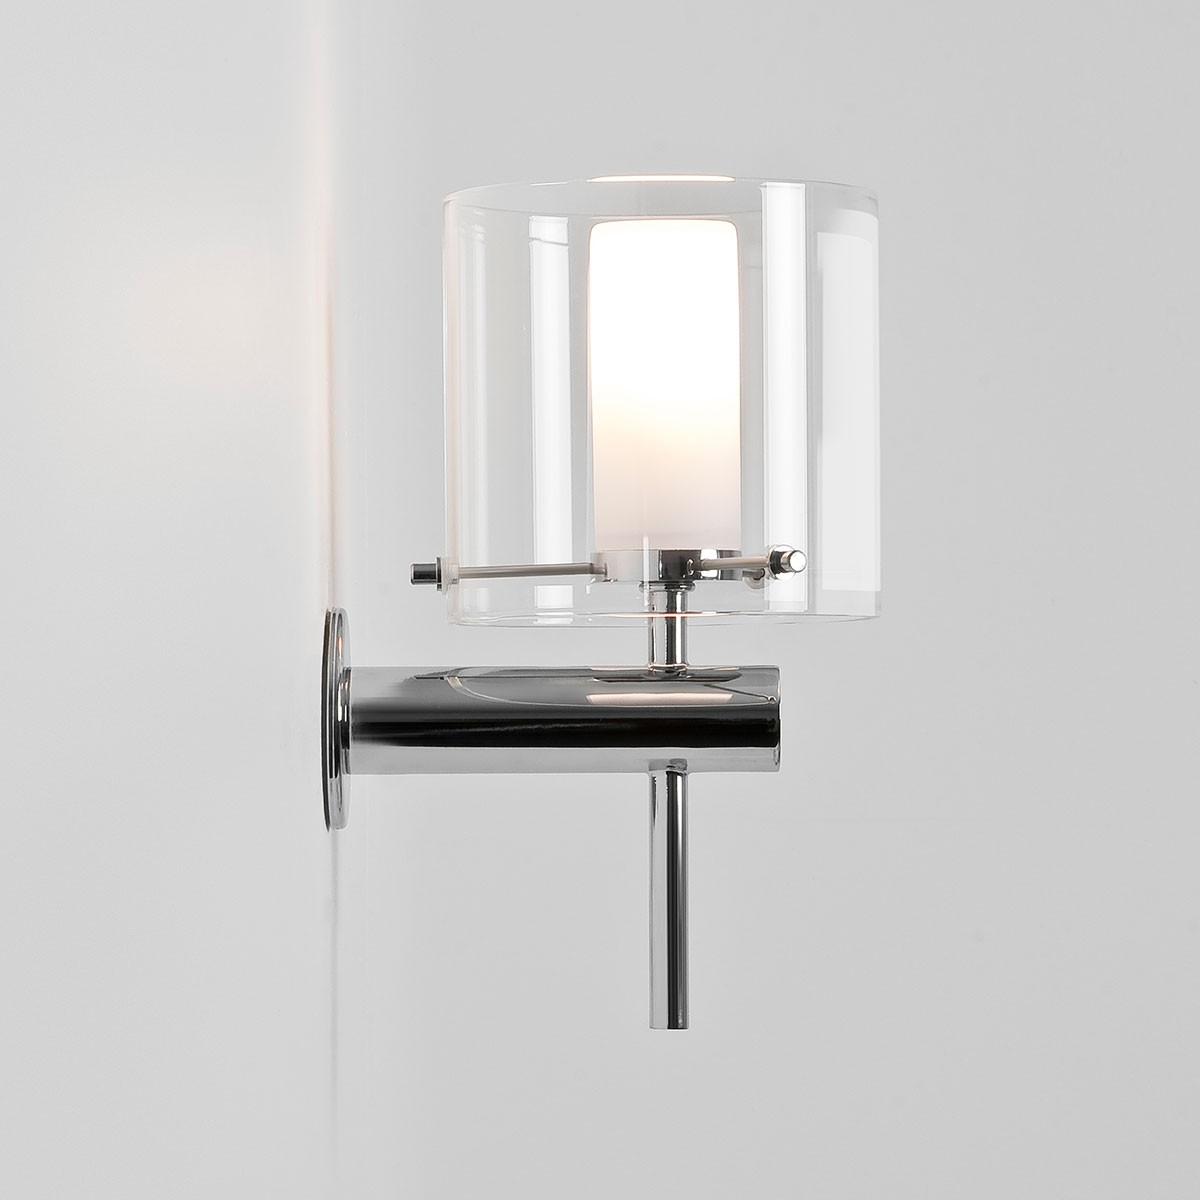 Astro arezzo polished chrome bathroom wall light at uk for Bathroom wall lights